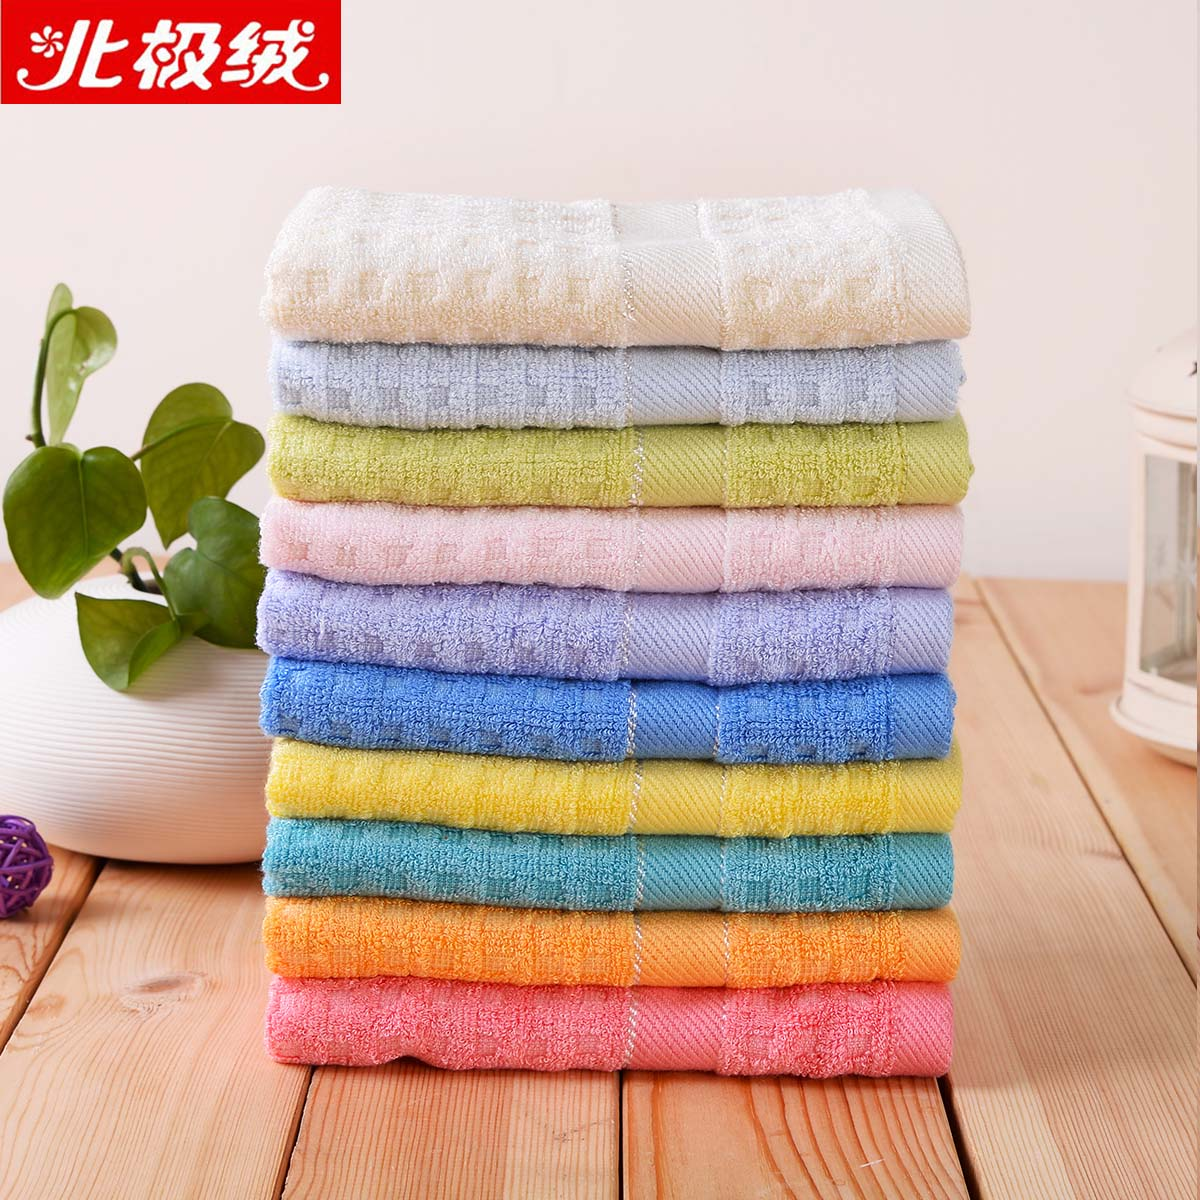 Beiji rong cotton ming mesclun leisure tourism office soft absorbent towel children baby towel beauty towel